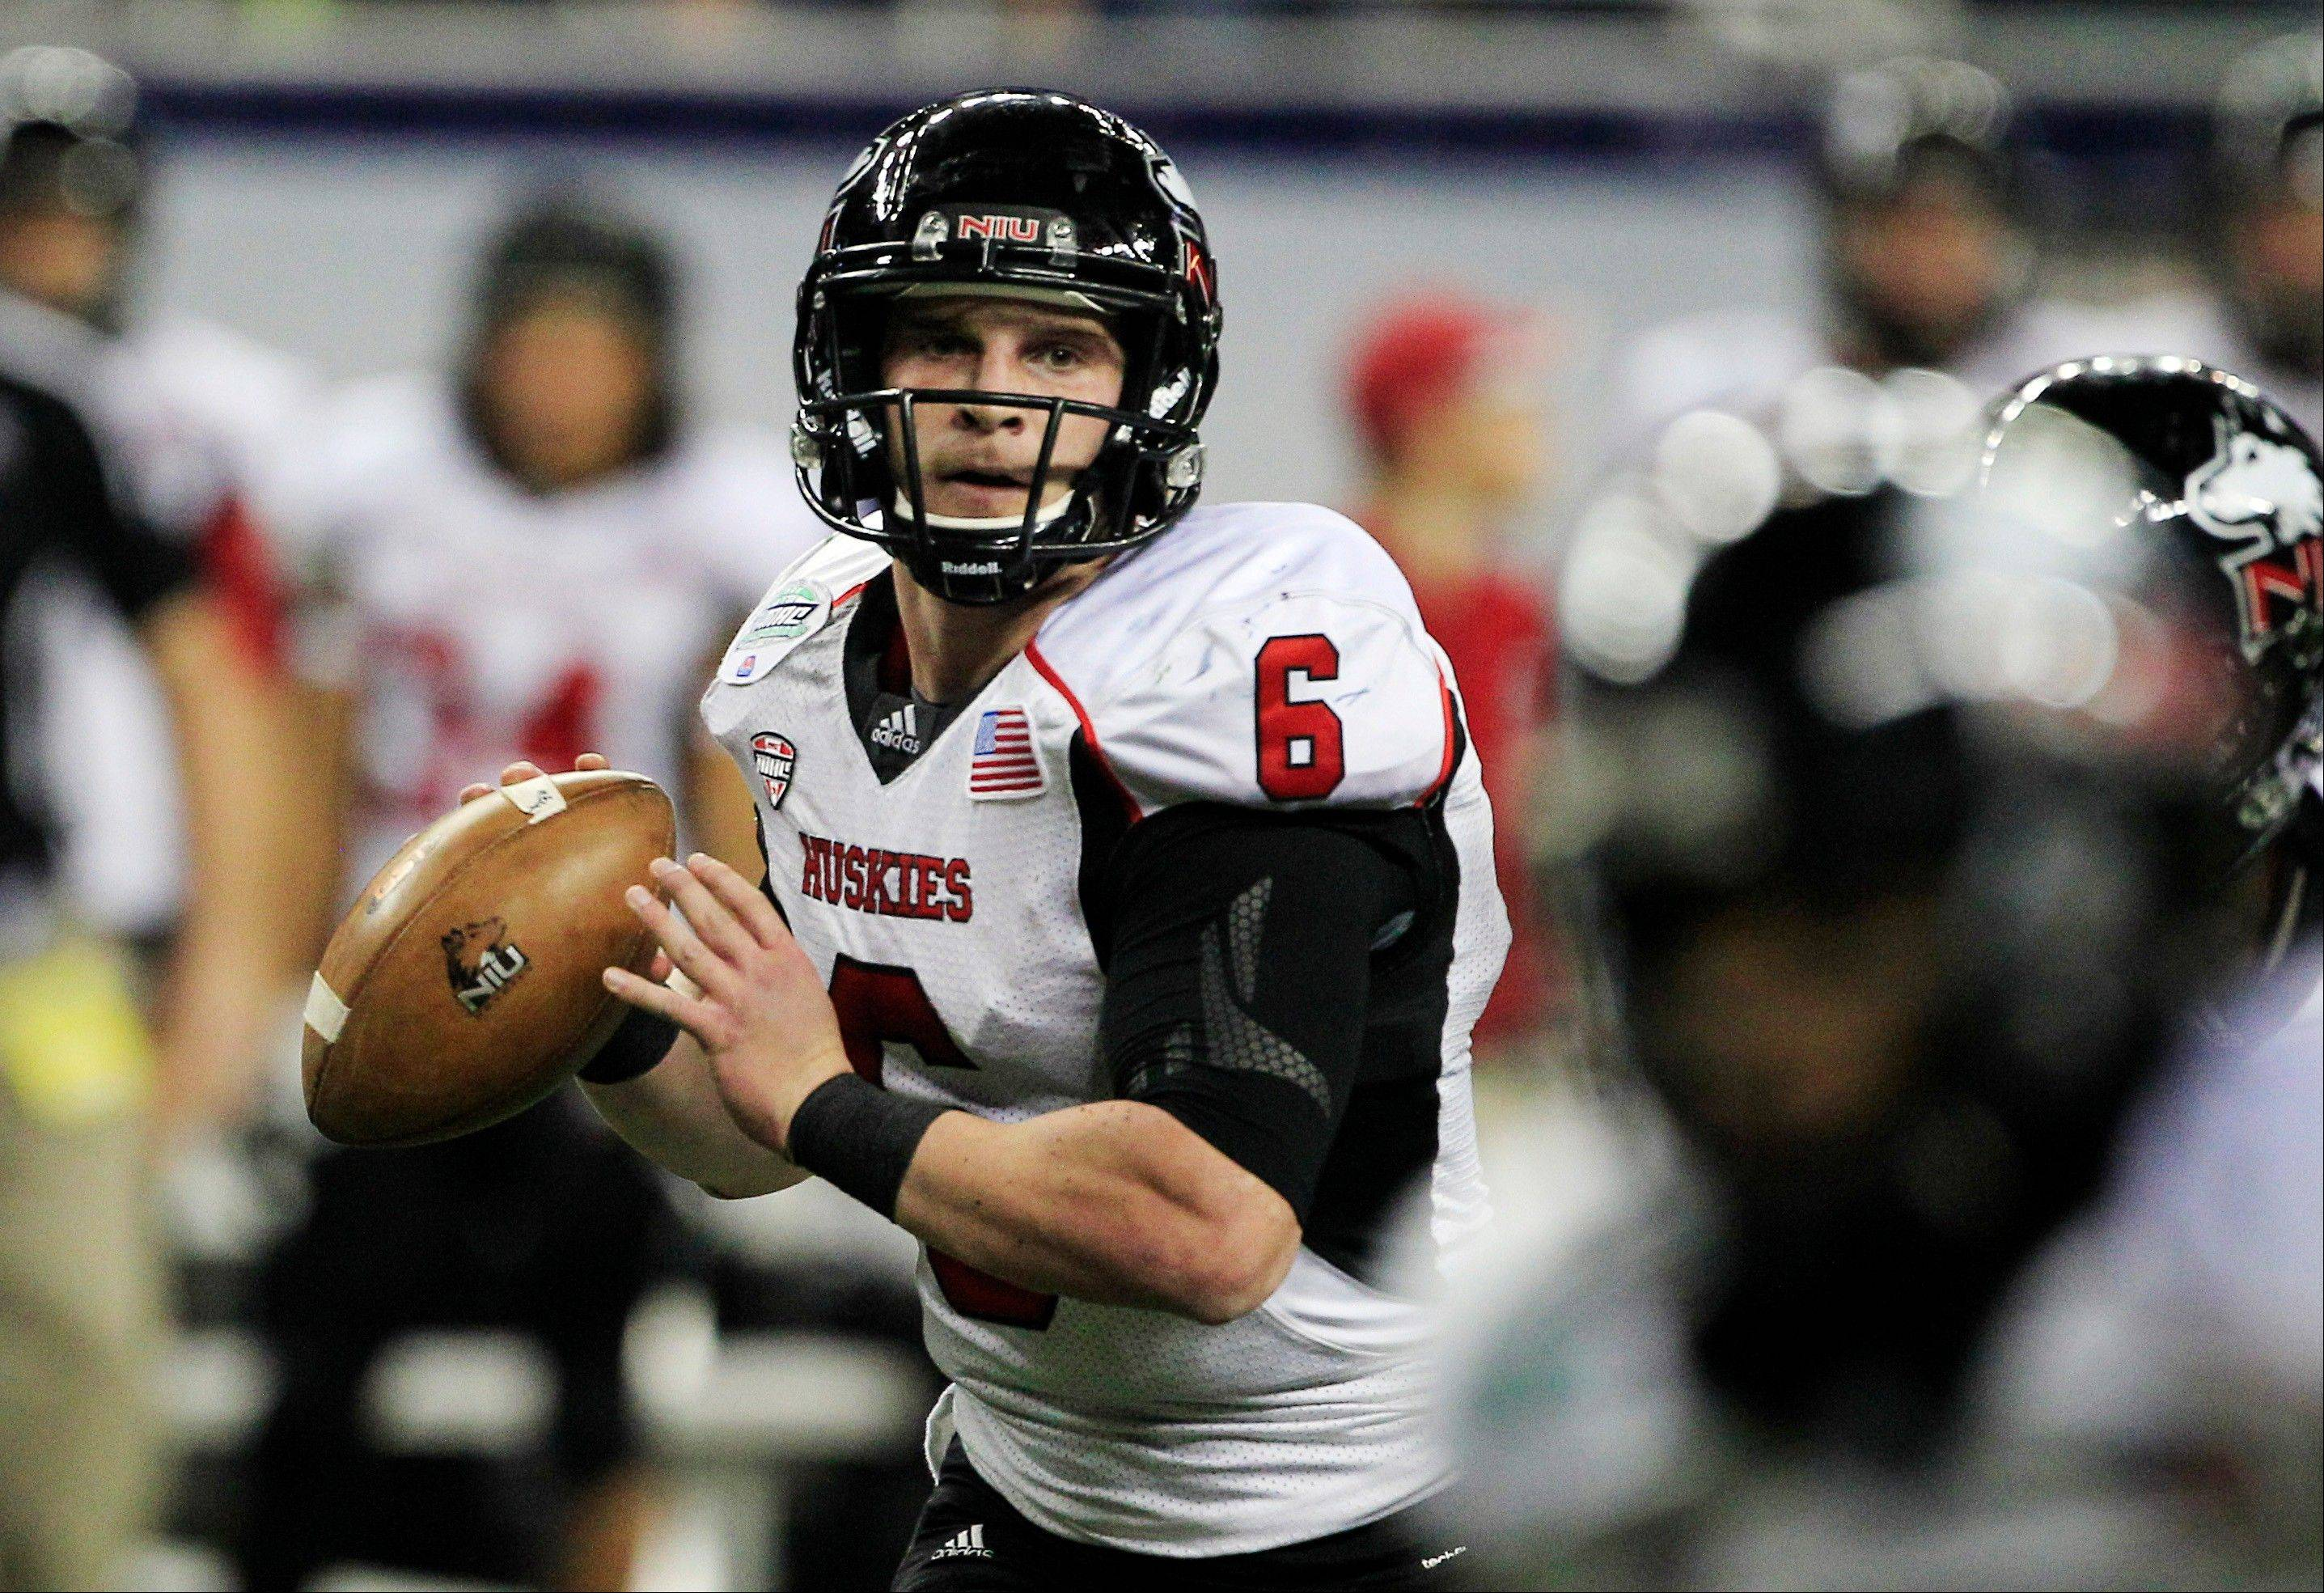 In this Nov. 30 file photo, Northern Illinois quarterback Jordan Lynch (6) looks to pass during the second quarter of the Mid-American Conference championship NCAA college football game against Kent State in Detroit.